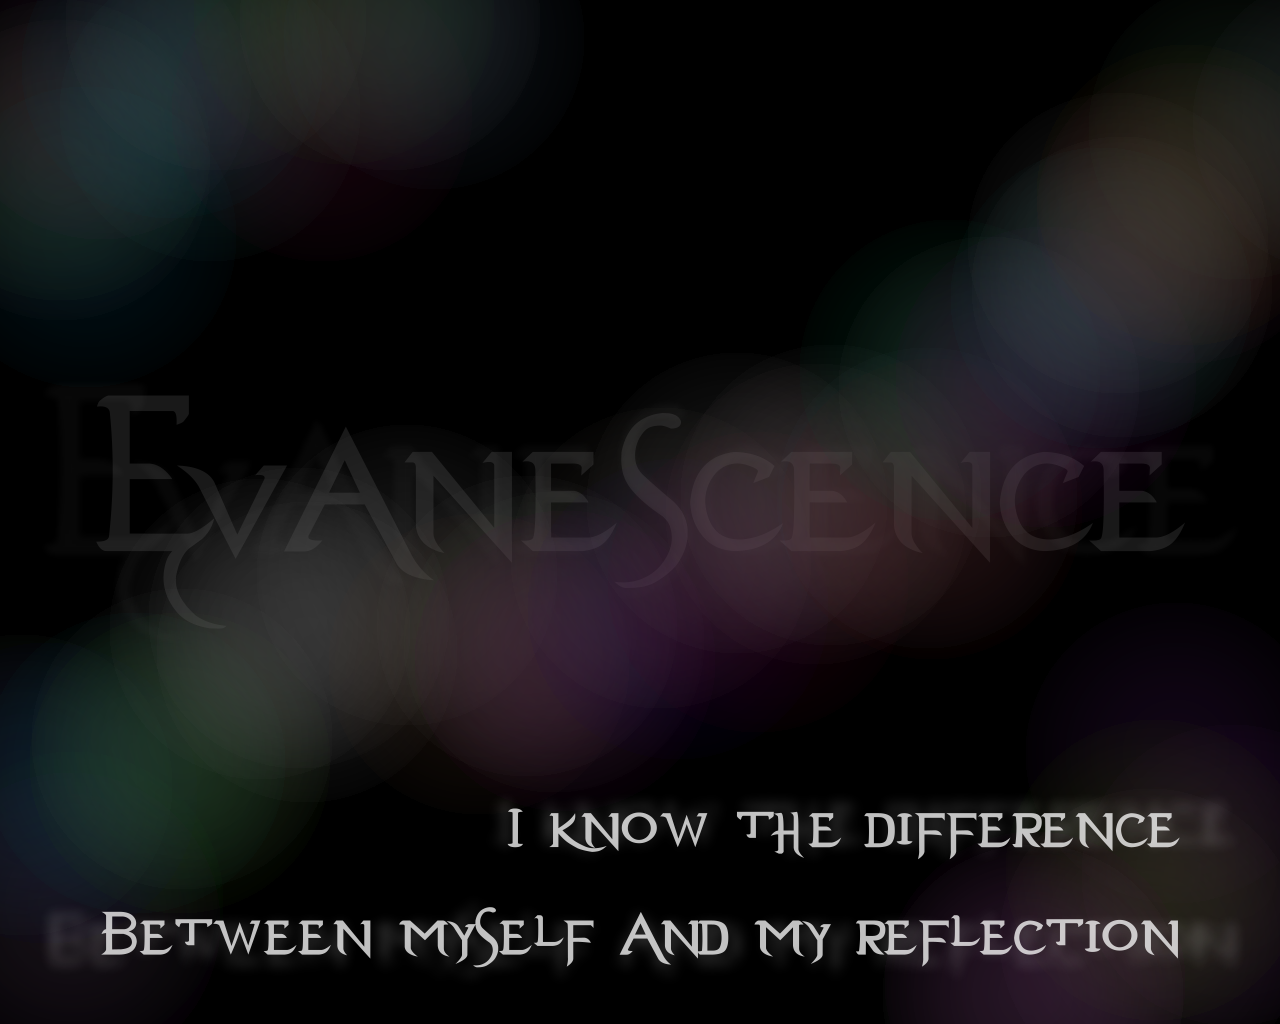 http://2.bp.blogspot.com/-HF-5OOwf7s8/TaXvmCmK24I/AAAAAAAAAH8/fVqRJyum43o/s1600/Breathe_No_More_Evanescence_Song_Lyric_Quote_in_Text_Image_1280x1024_Pixels.png